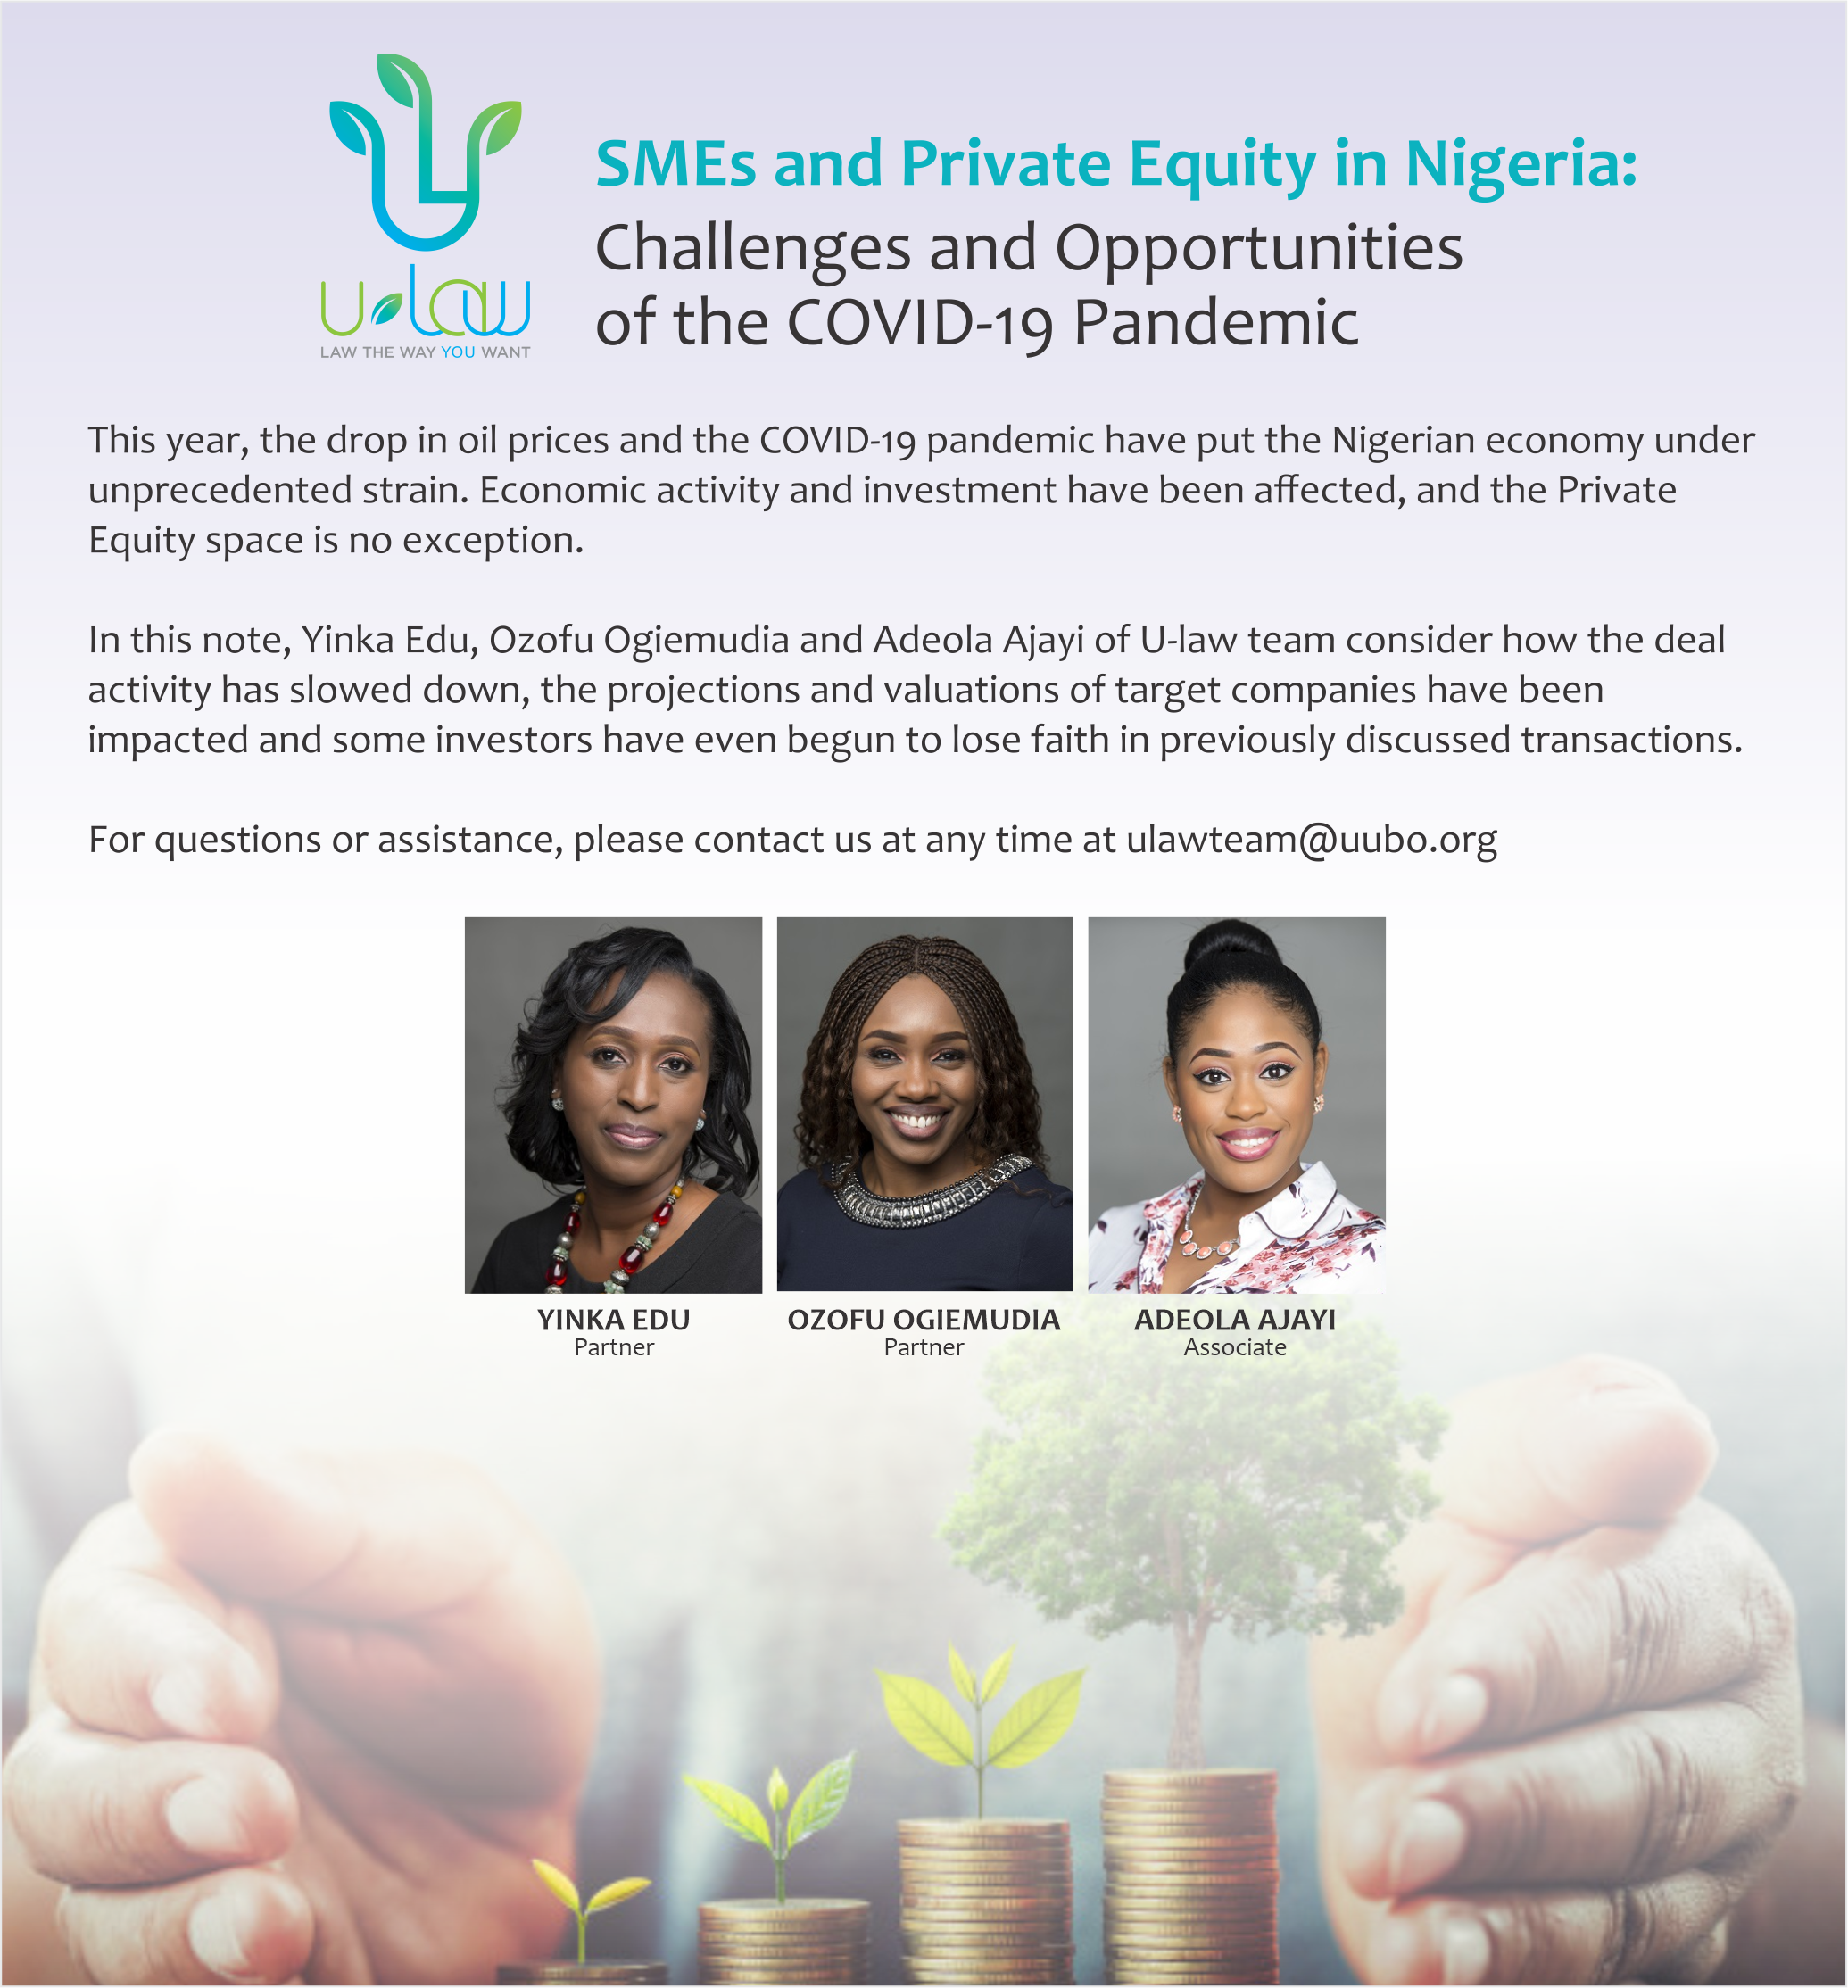 SMES AND PRIVATE EQUITY IN NIGERIA - CHALLENGES AND OPPORTUNITIES OF THE COVID-19 PANDEMIC